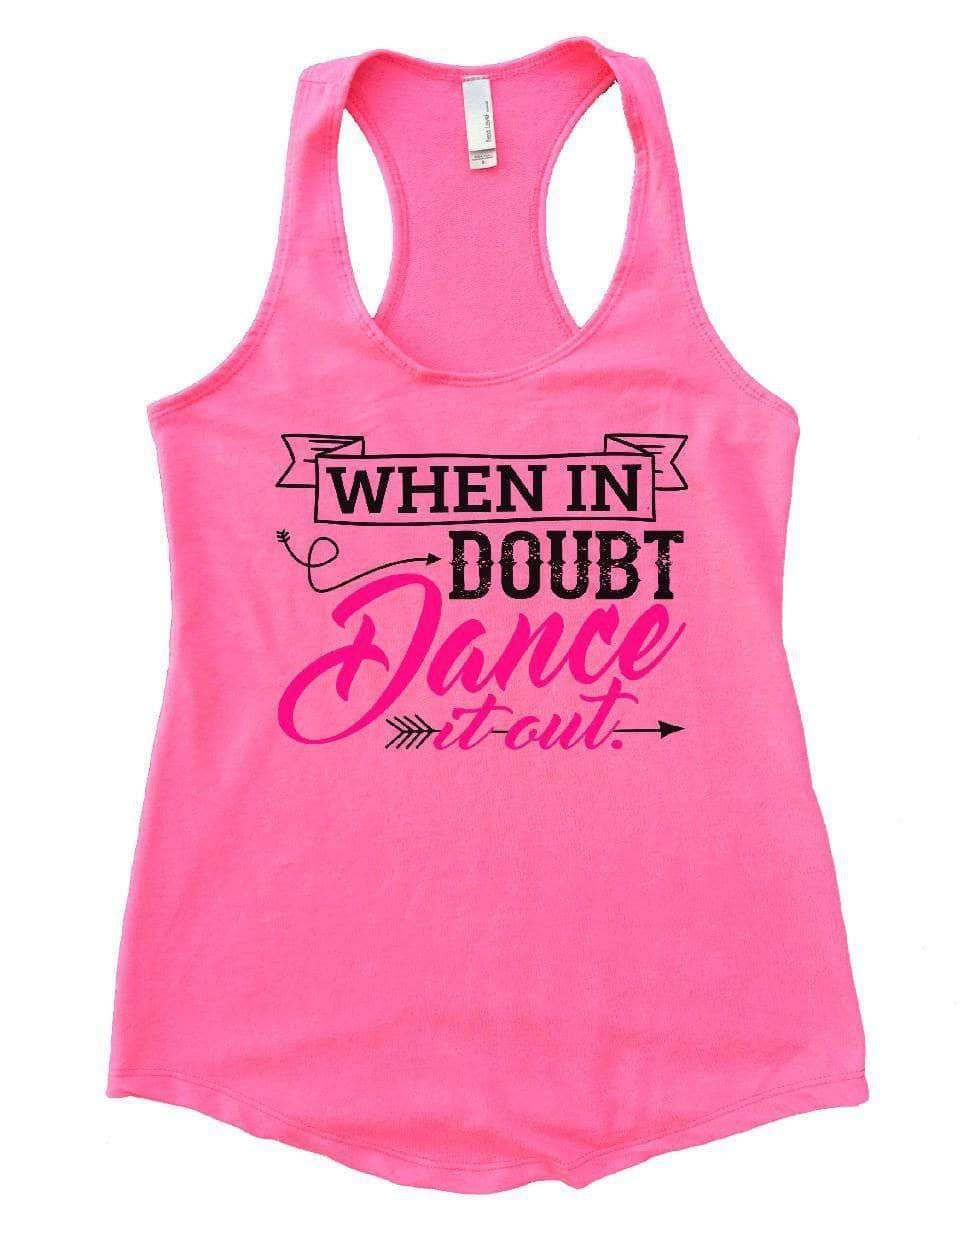 WHEN IN DOUBT Dance It Out. Womens Workout Tank Top Small Womens Tank Tops Heather Pink